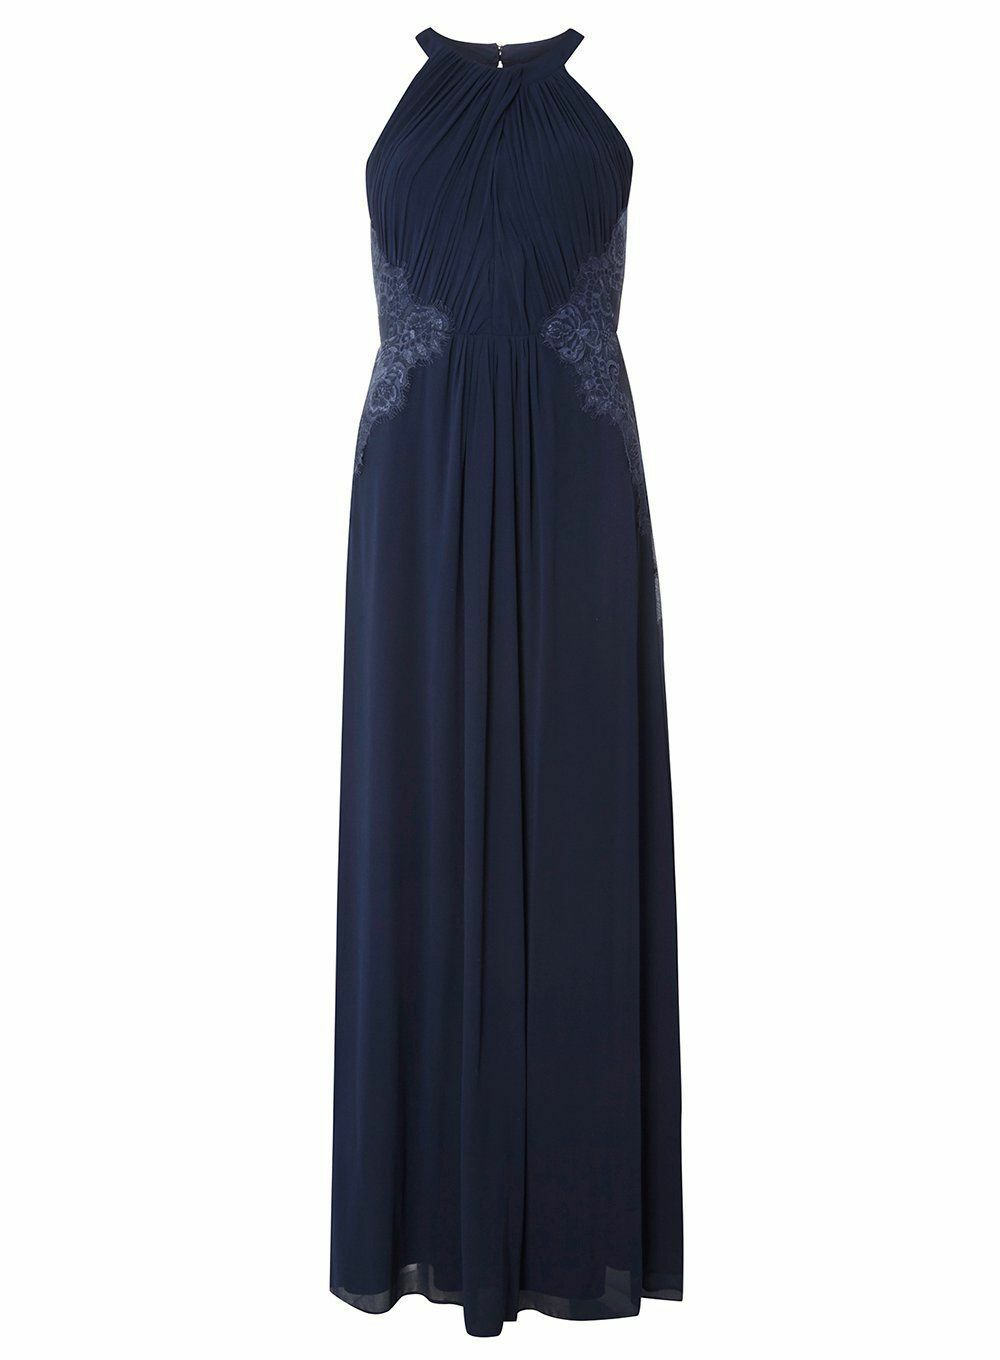 Dgoldthy Perkins Showcase Elizabeth Maxi Dress Navy Size DH181 GG 17